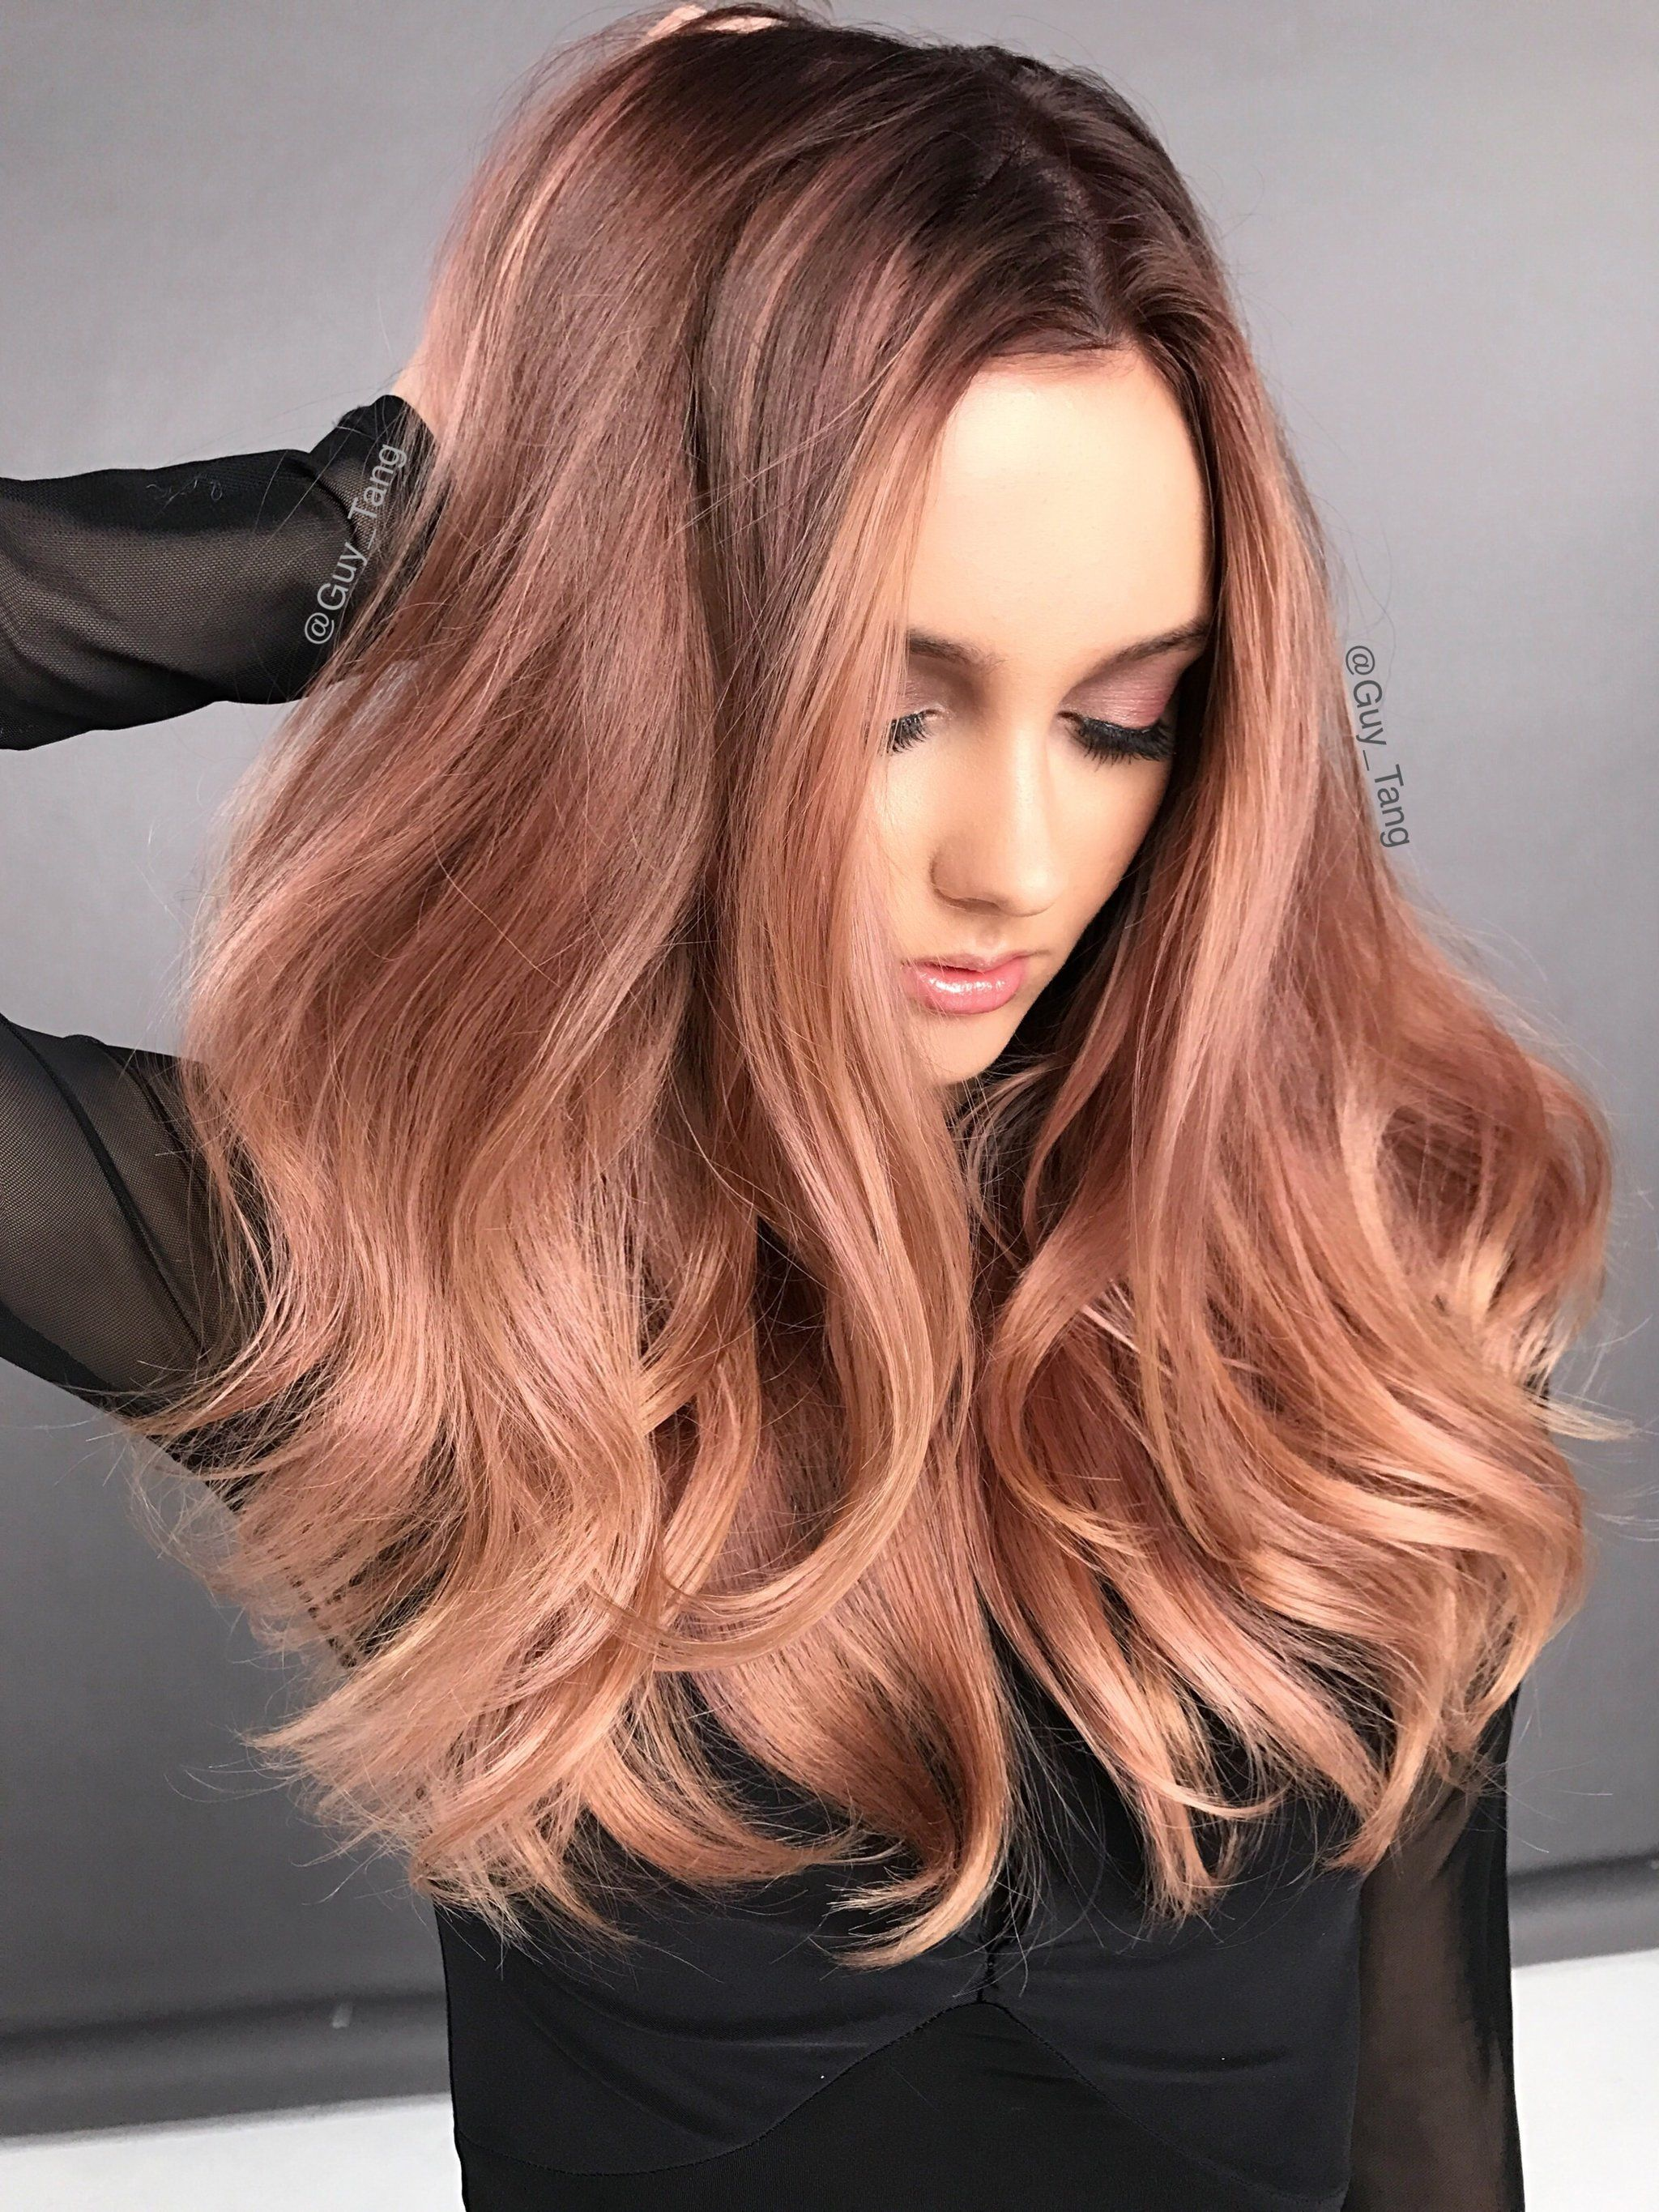 The look at home using l oreal paris feria smokey pastels in p2 smokey - Colorist Guy Tang Is Releasing His Own Line Of Vibrant Pre Mixed Shades